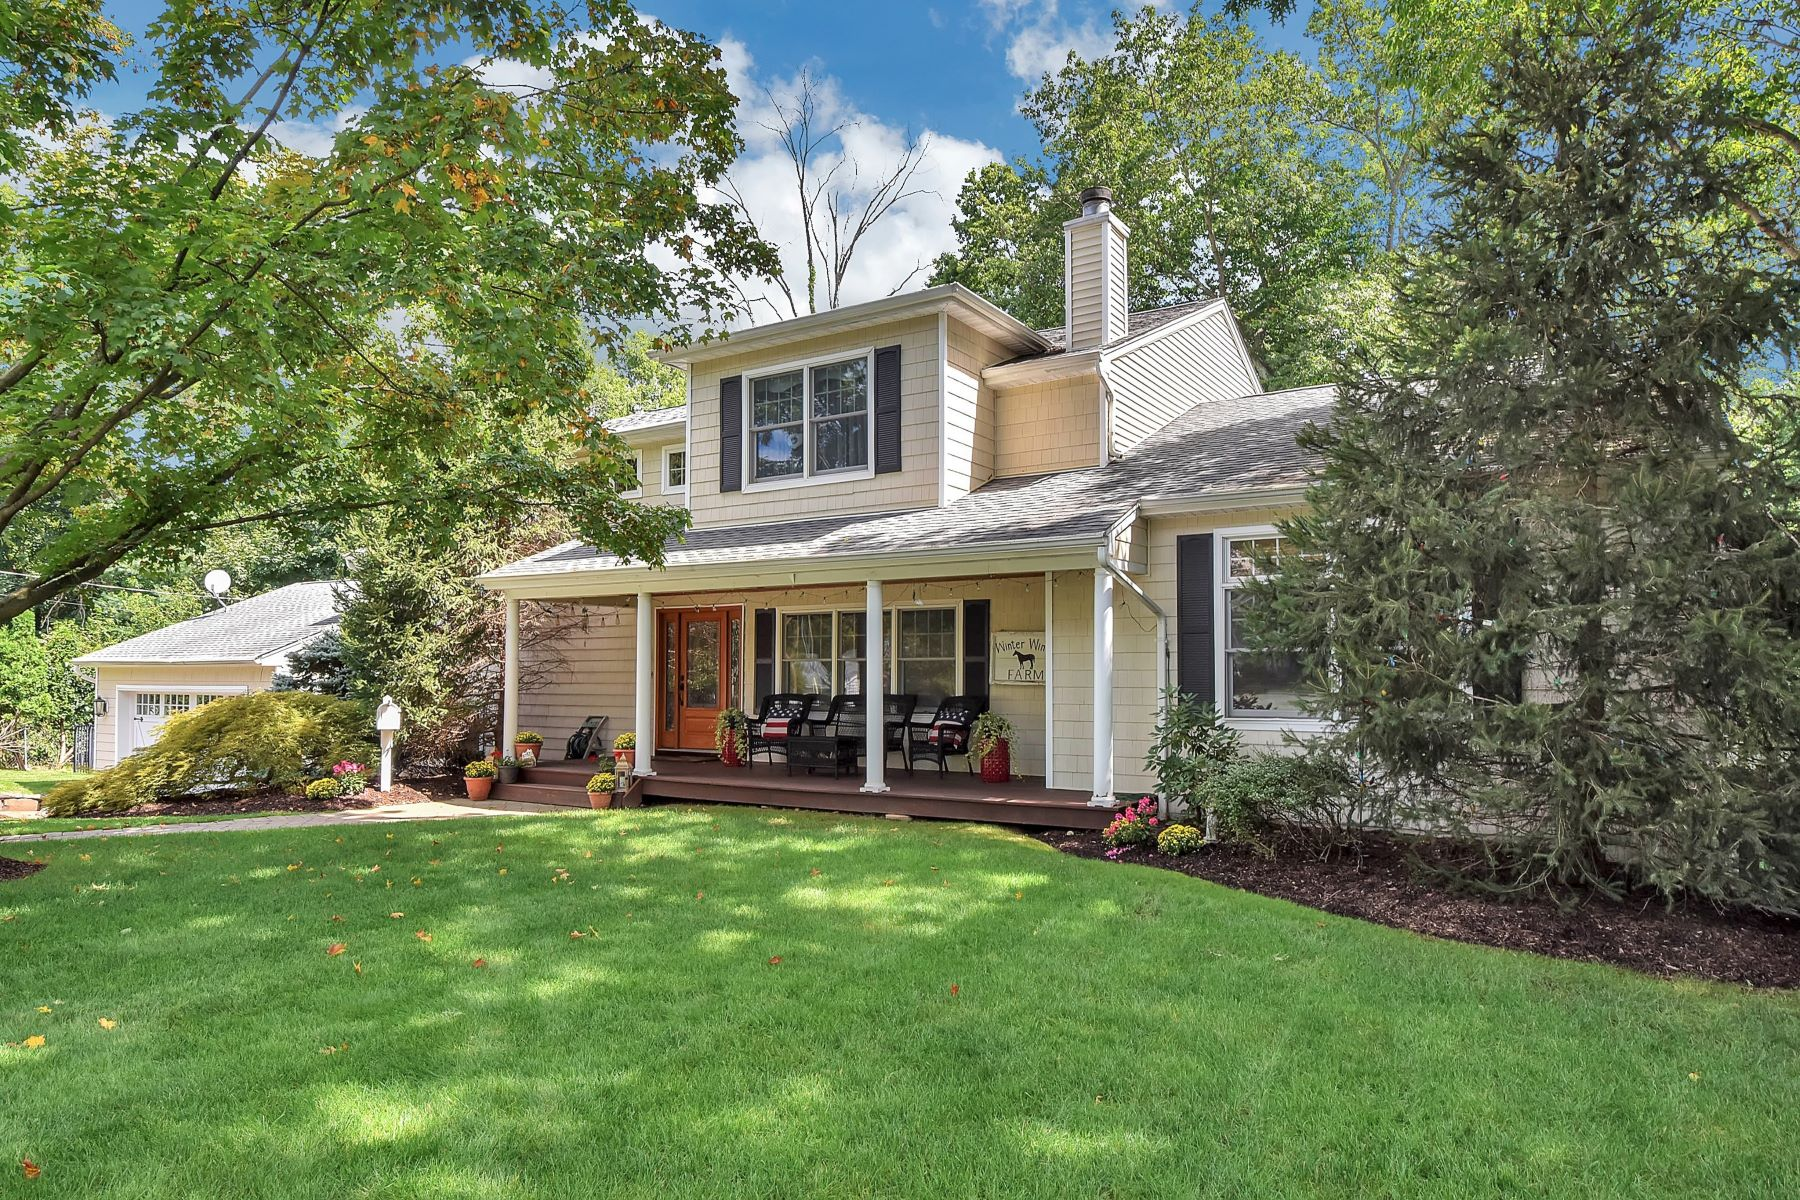 Single Family Home for Sale at Expanded and Renovated 44 Walter Ct, Harrington Park, New Jersey 07640 United States